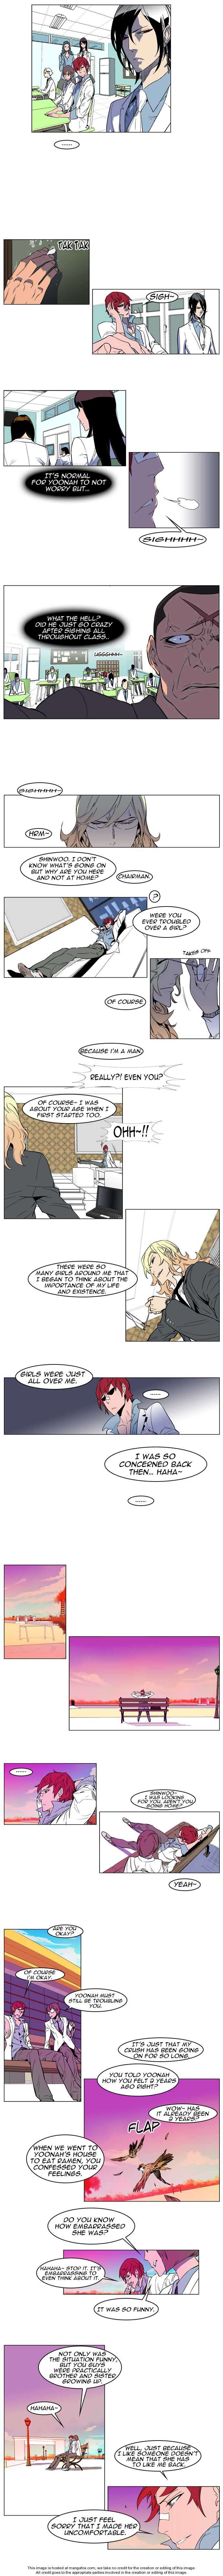 Noblesse 156 Page 2